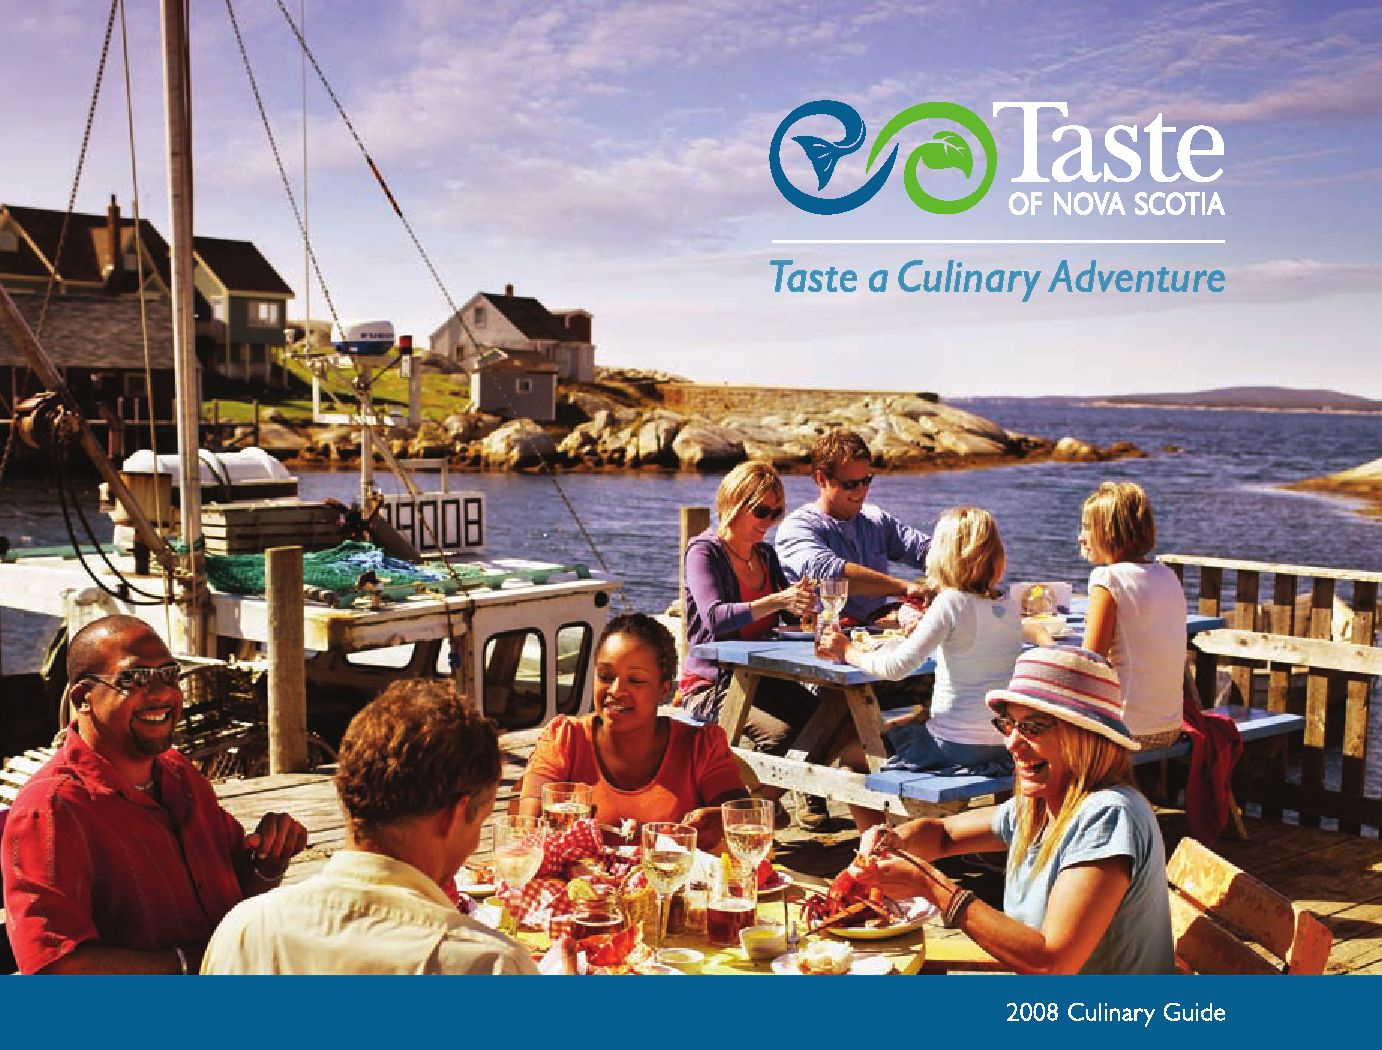 Windows vista chebucto plus connection - Taste Of Nova Scotia 2008 Culinary Guide By Taste Of Nova Scotia Issuu